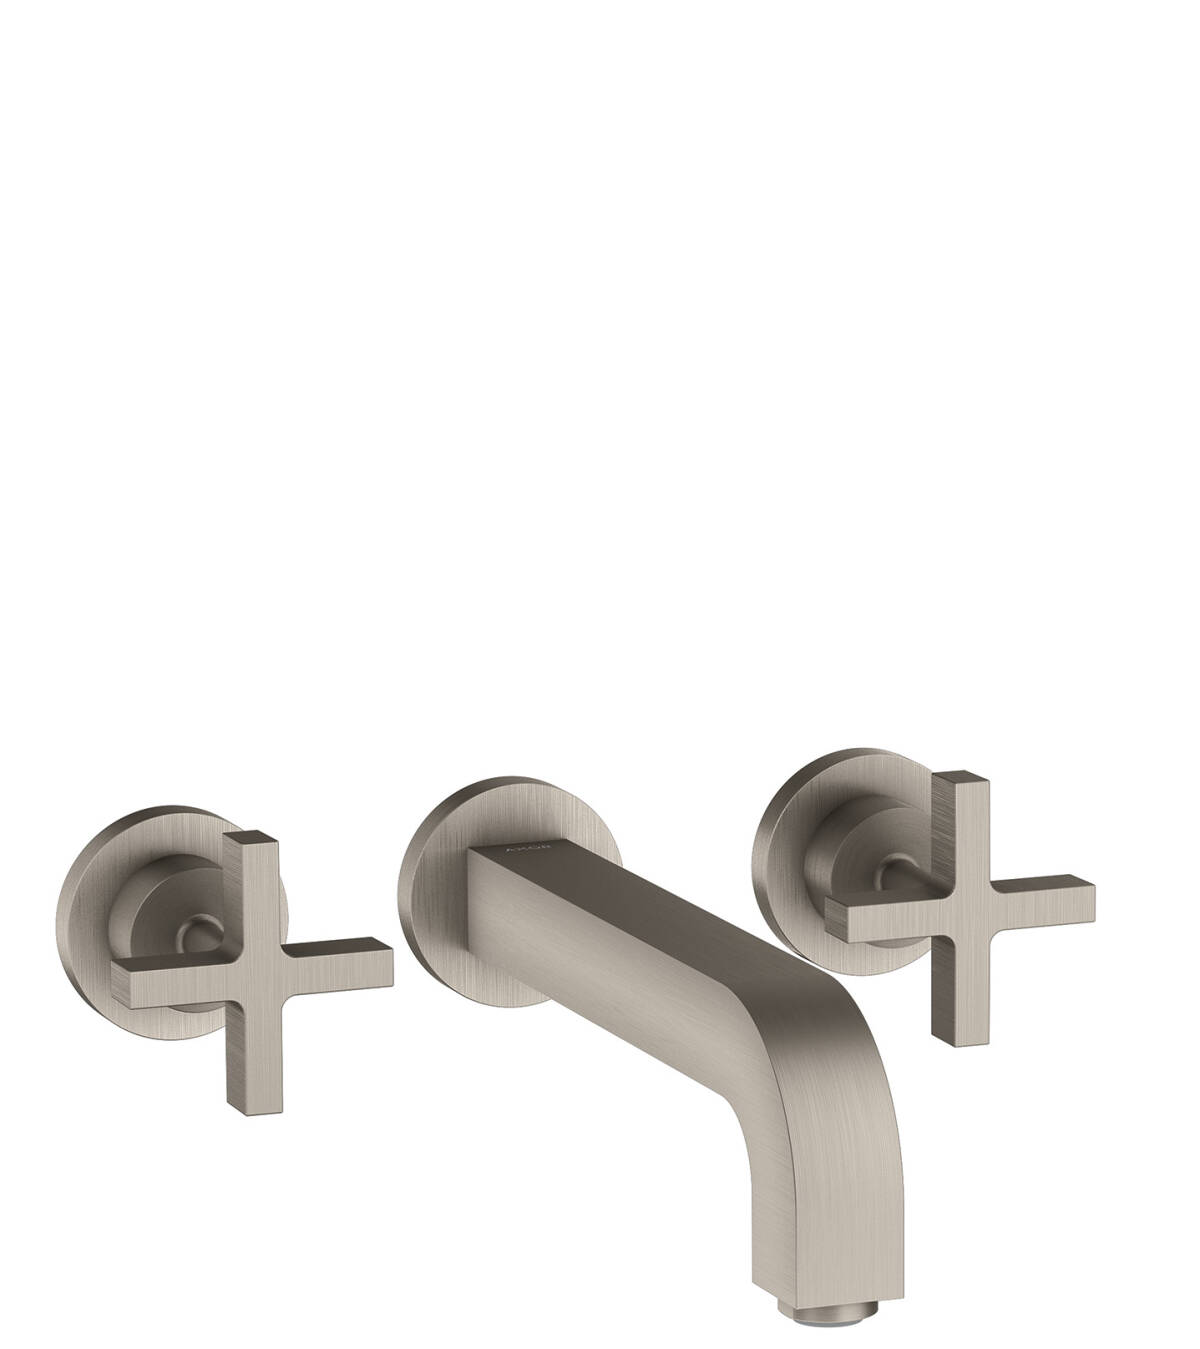 3-hole basin mixer for concealed installation wall-mounted with spout 222 mm, cross handles and escutcheons, Stainless Steel Optic, 39143800